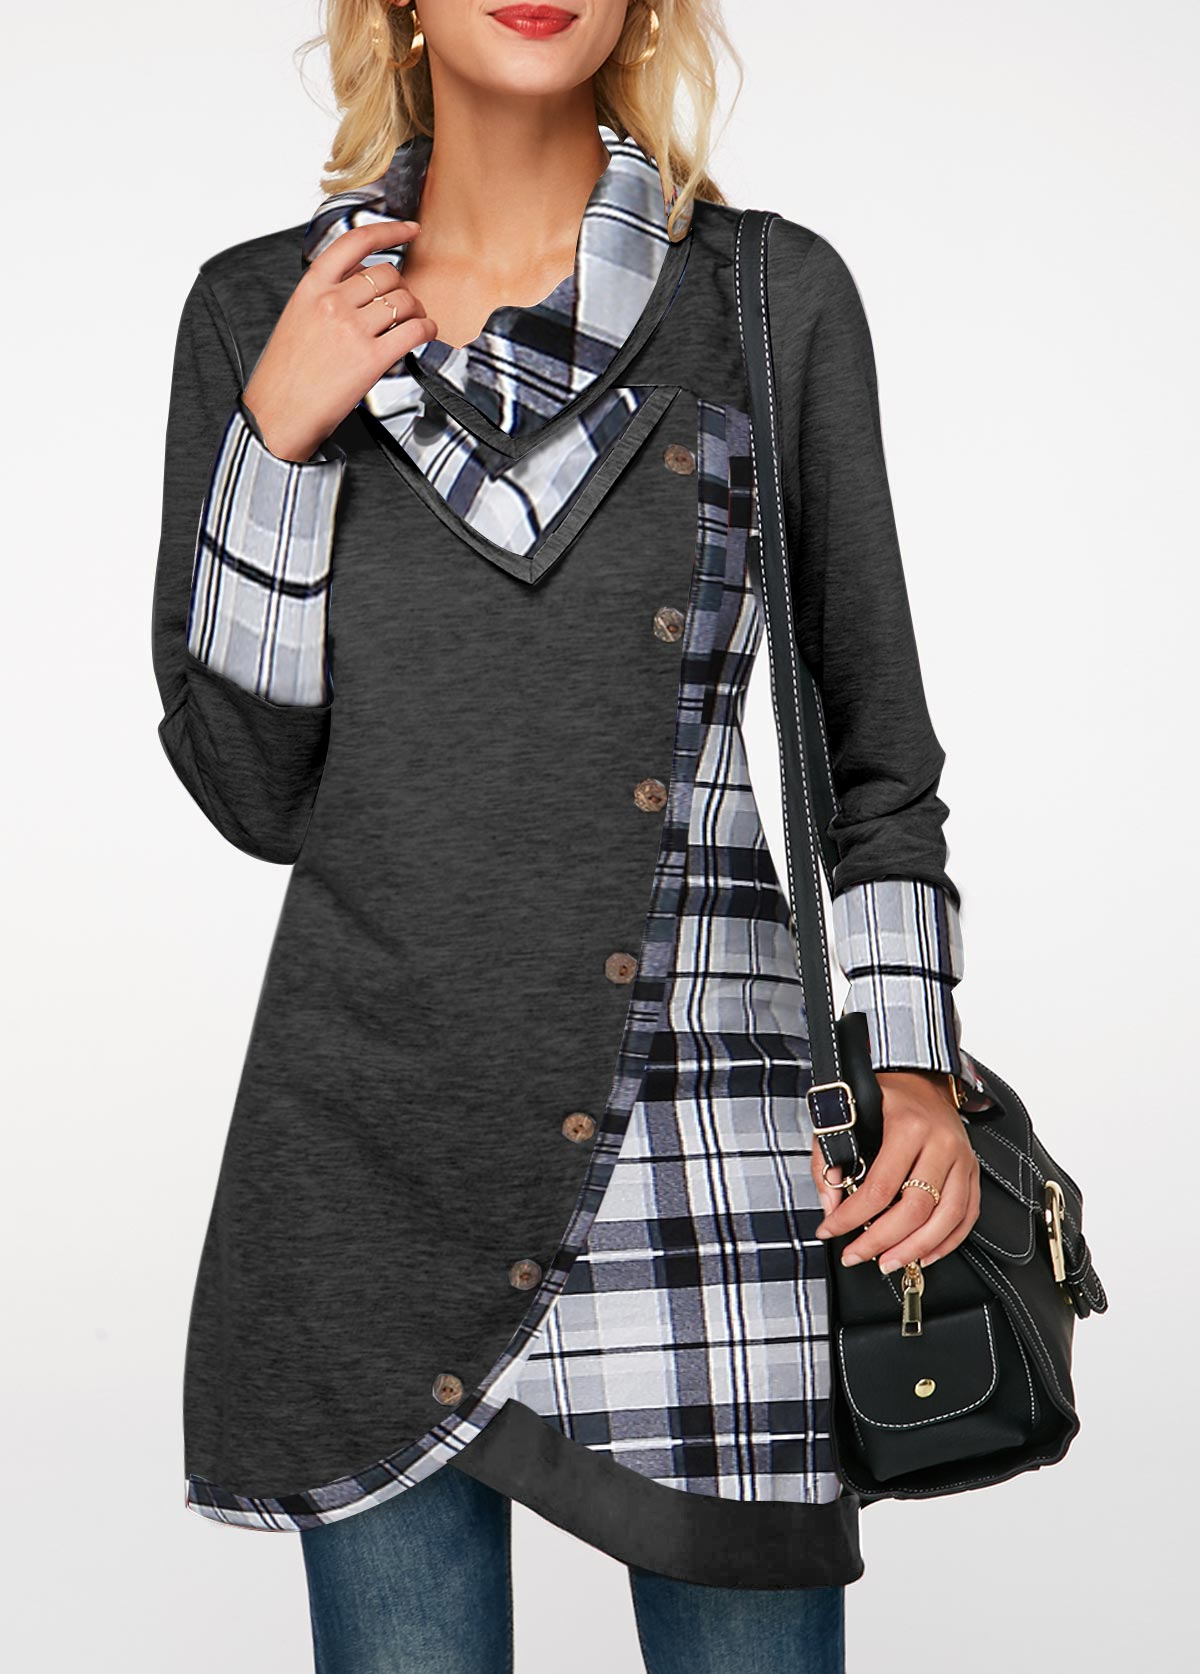 ROTITA Plaid Print Turndown Collar Inclined Button Tunic Top